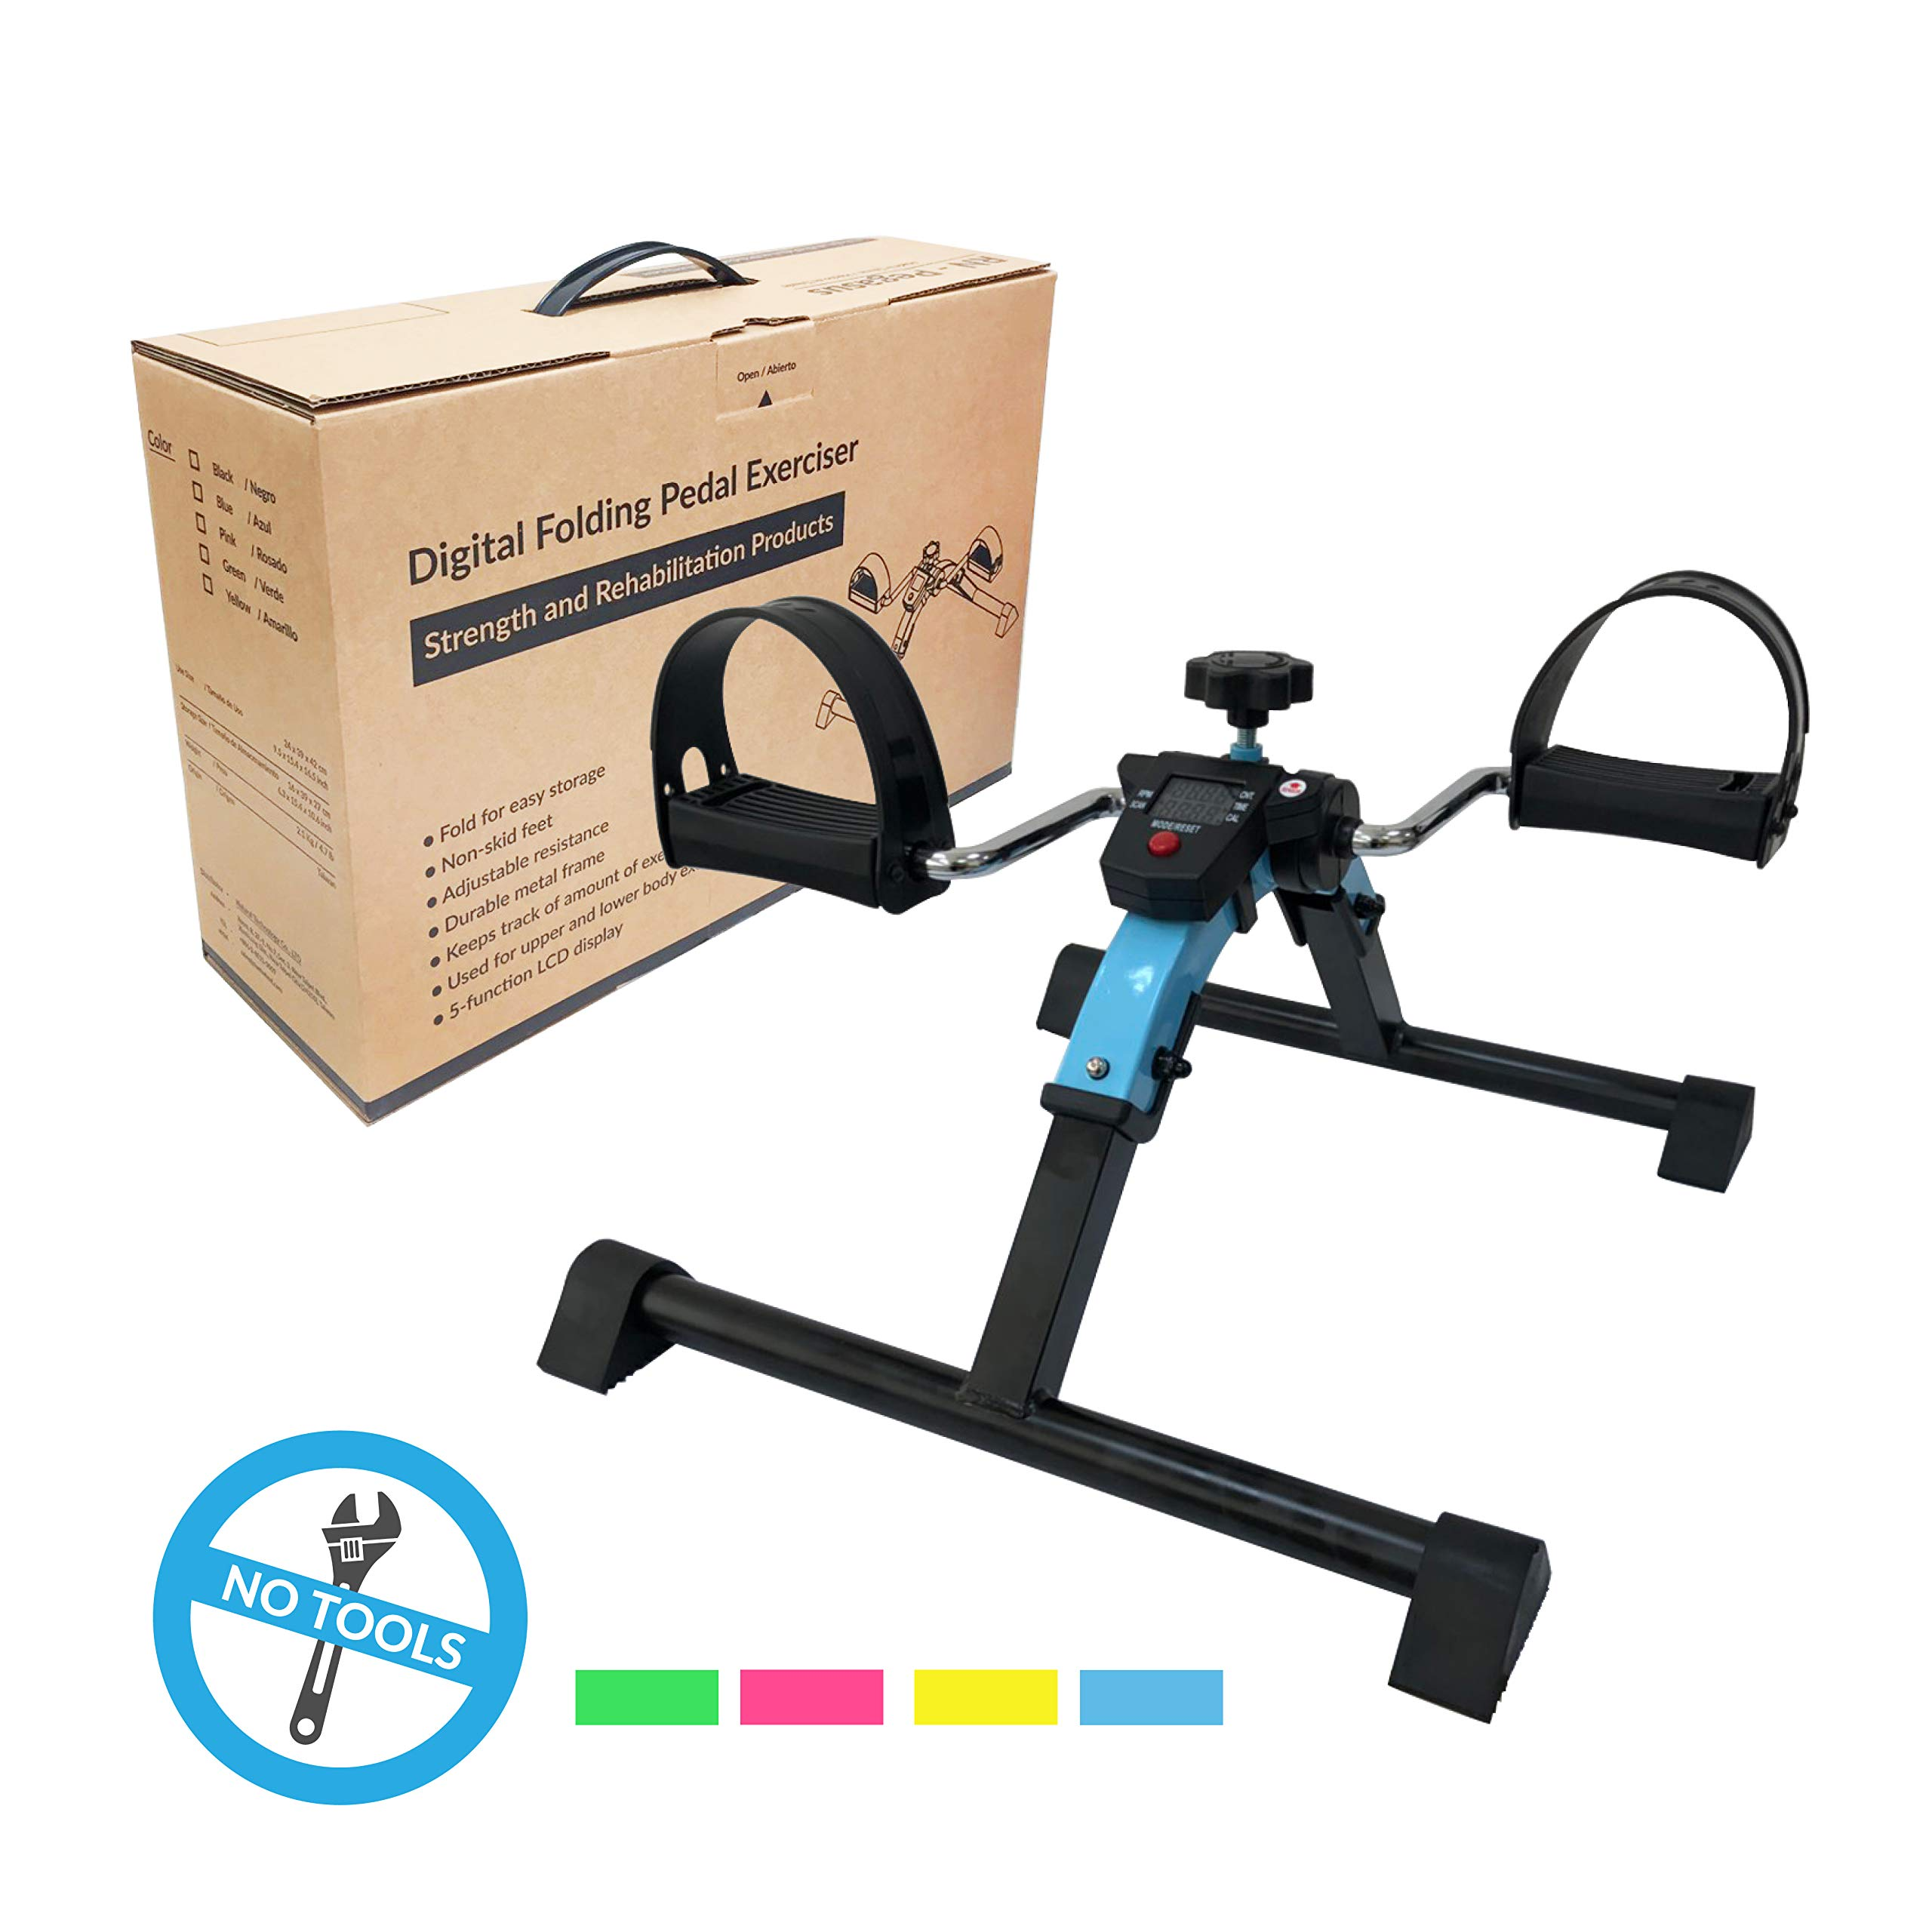 Portable Pedal Exerciser for Leg and Arm, with LCD Display, Mini Folding Exercise Bike Suitable for Home Fitness Resistance Cycle Training Workout (Cyan)